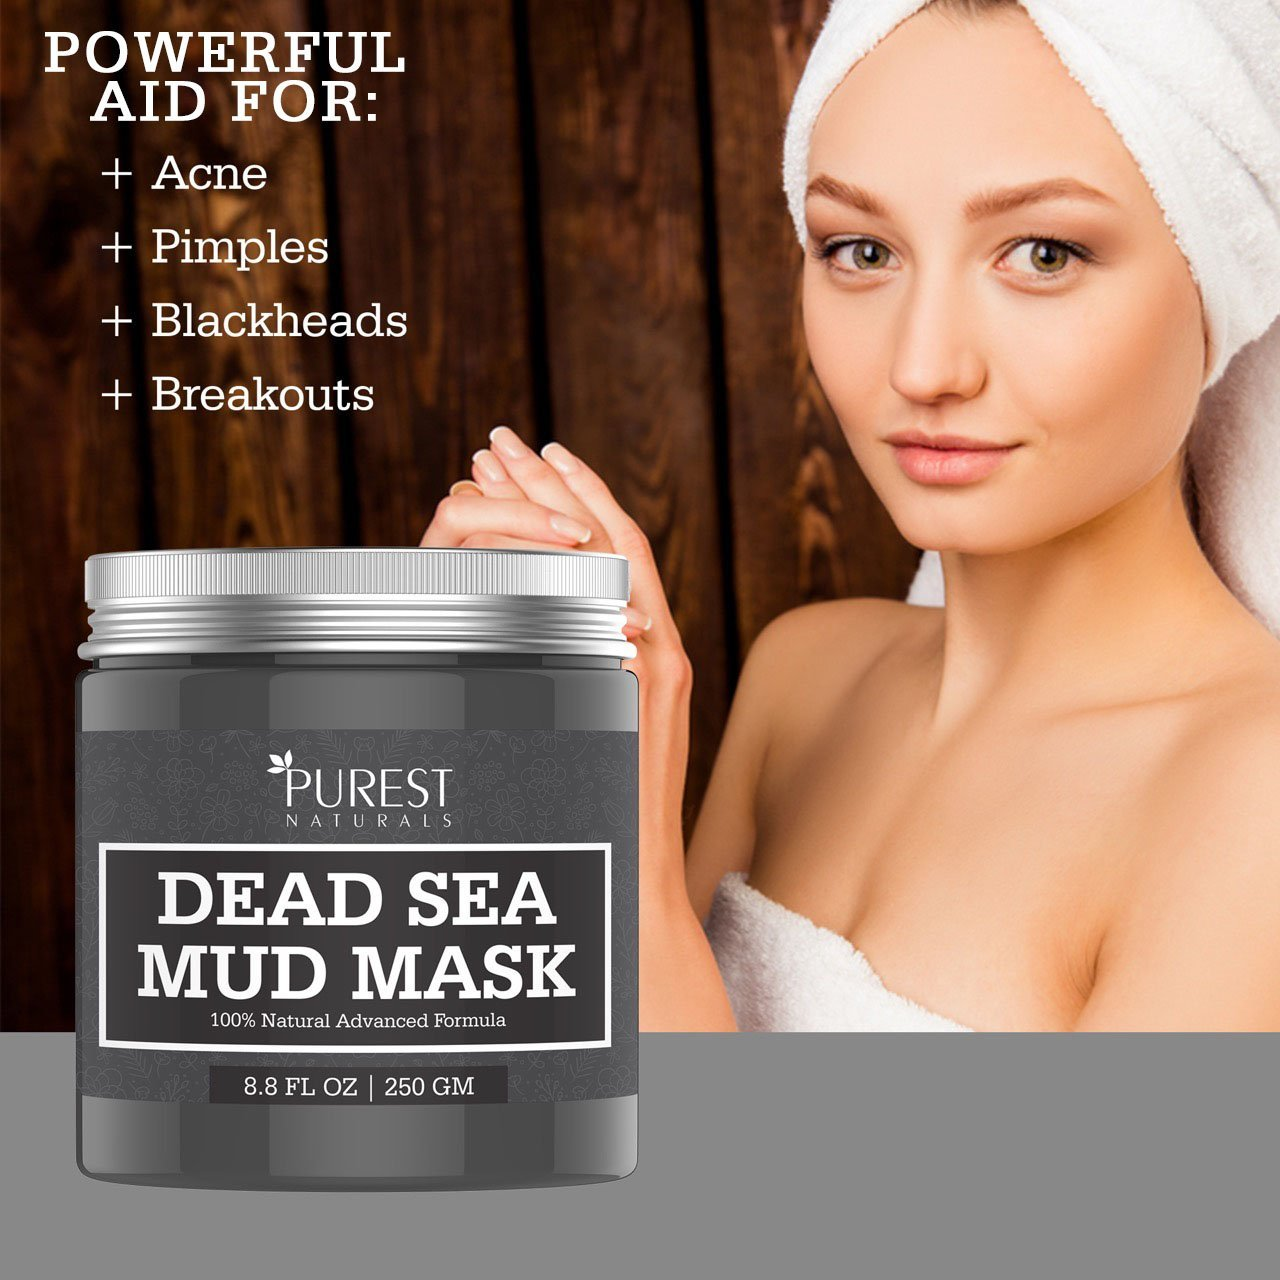 Purest Naturals Dead Sea Mud Mask - Best Facial Mask For Acne, Oily Skin & Blackheads - 100% Natural & Organic Deep Skin Cleanser - Reduces Signs Of Aging, Pores & Wrinkles - Ultimate Spa Quality